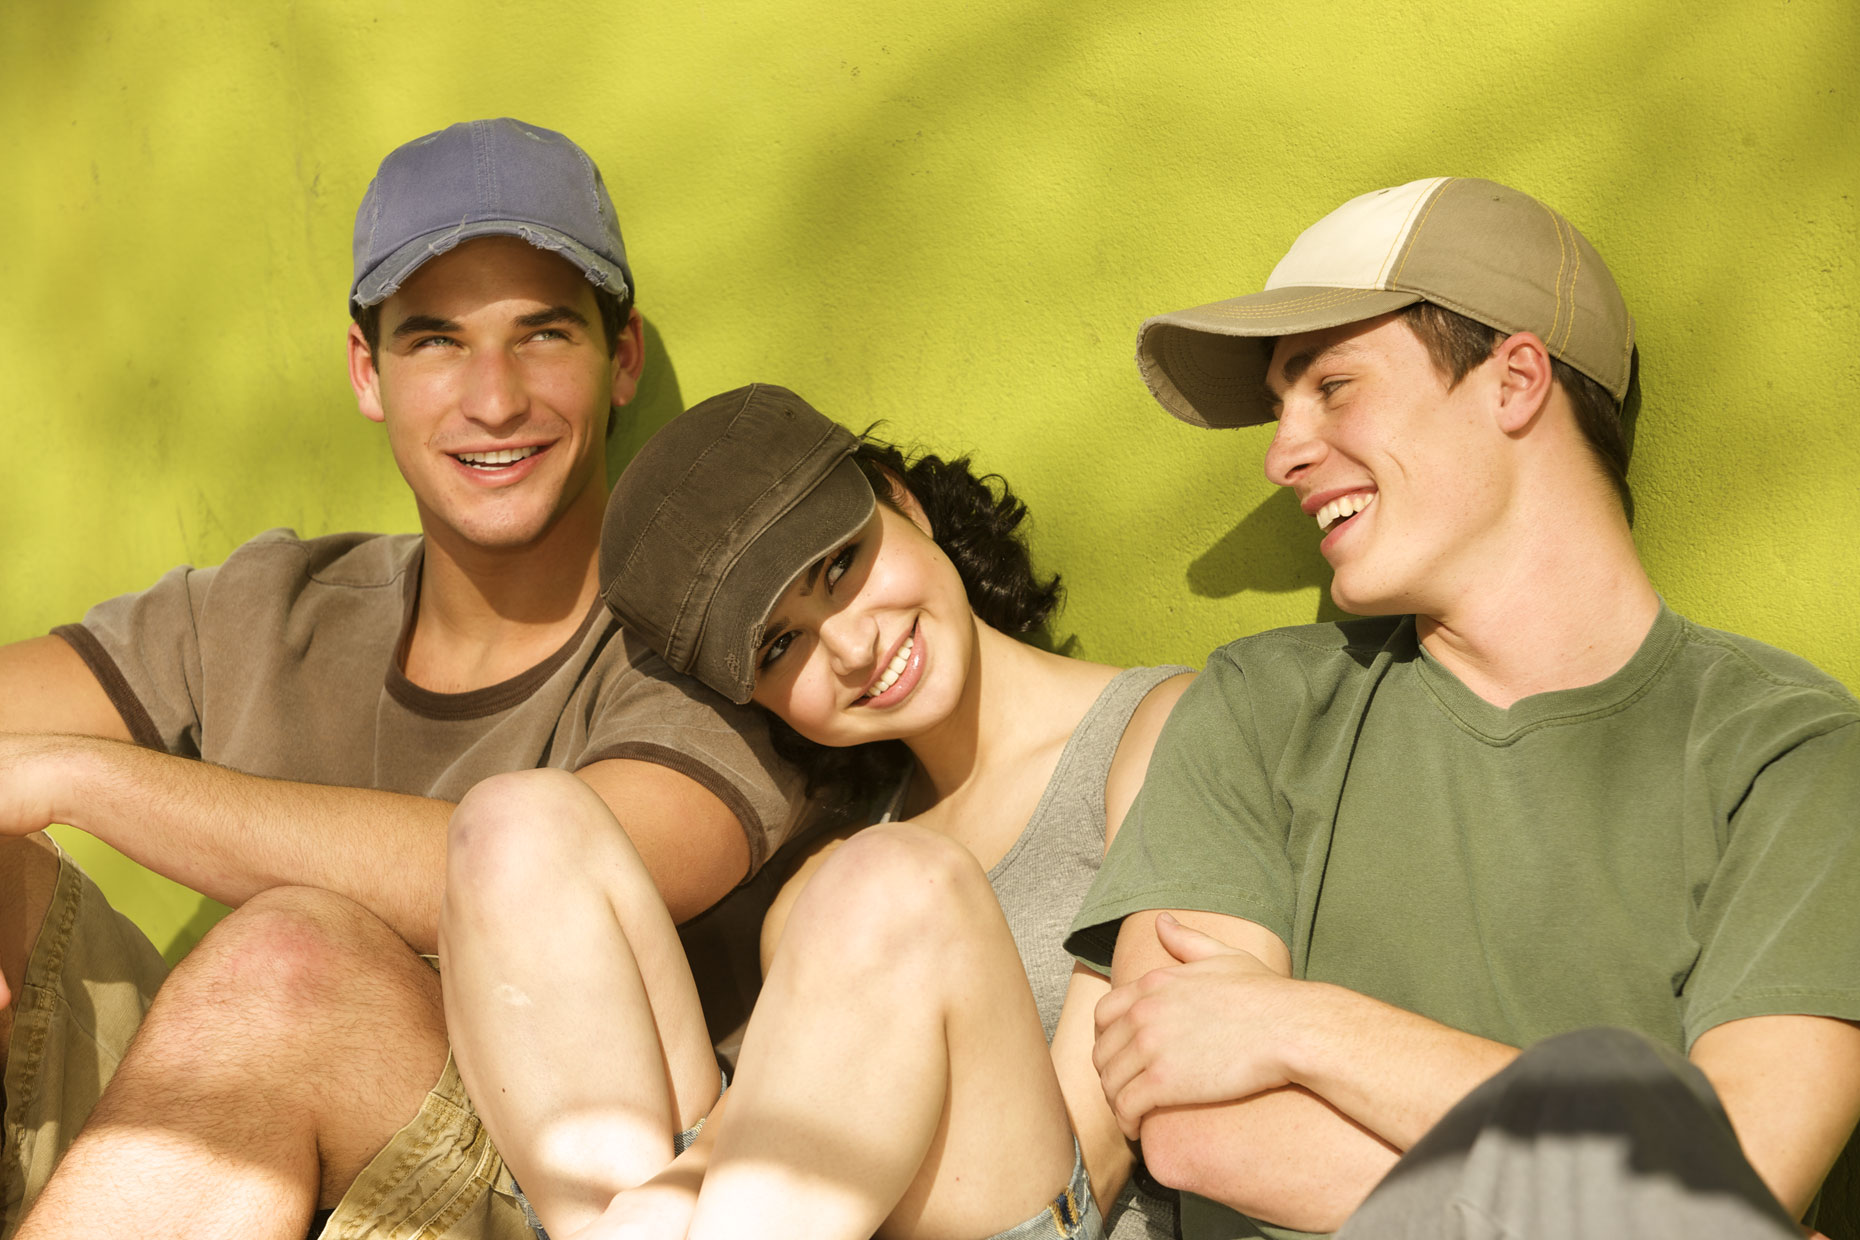 Young teens relaxing in hats.